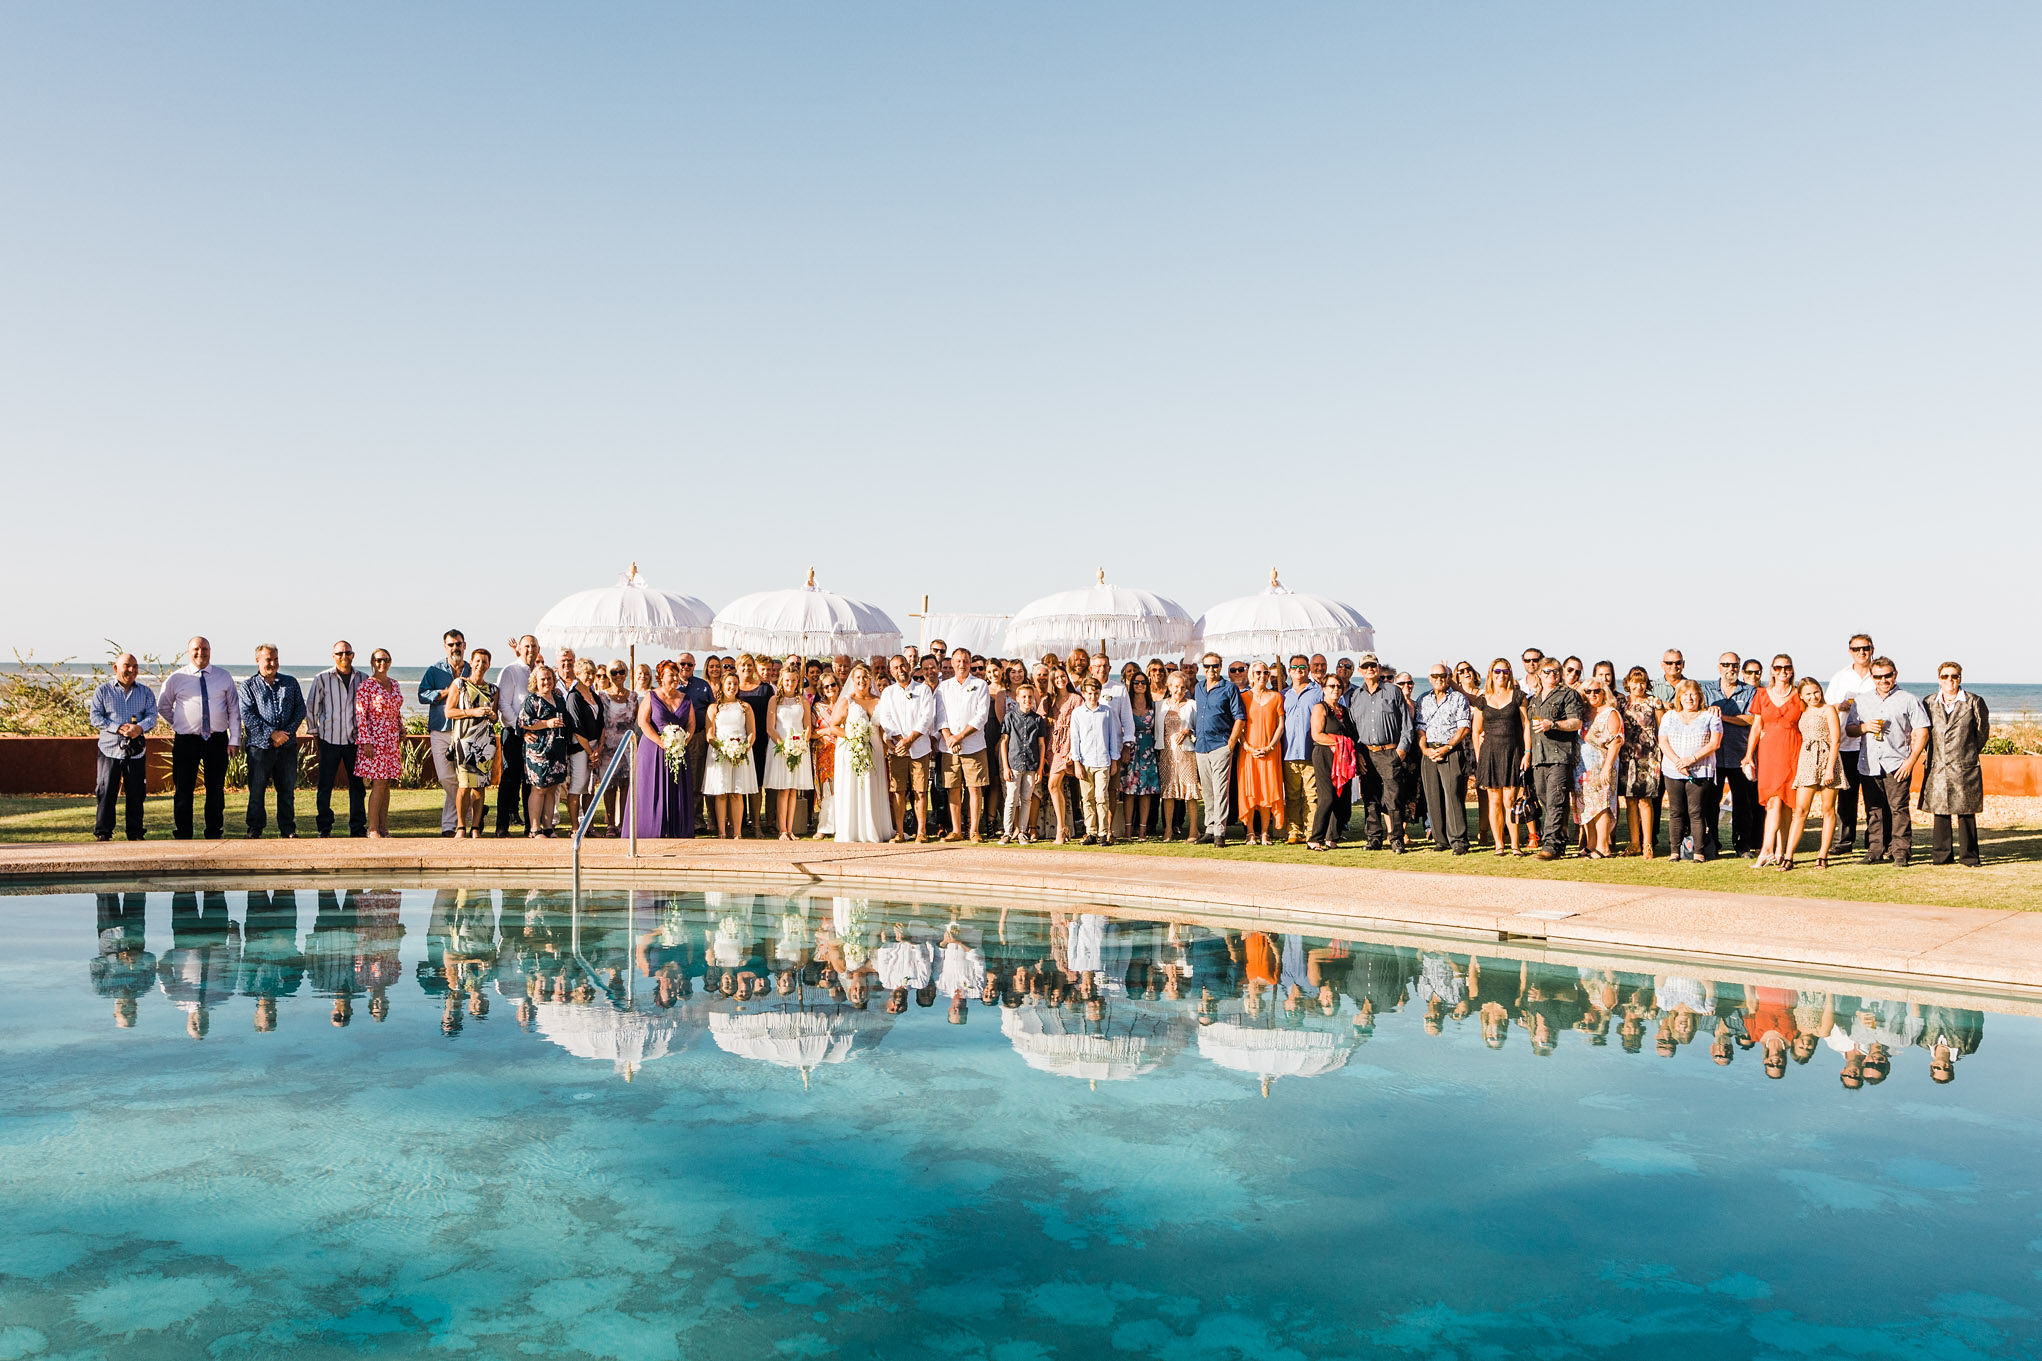 JS&G-elope-to-ningaloo-wedding-bluemedia-mantaraysresort-8.jpg